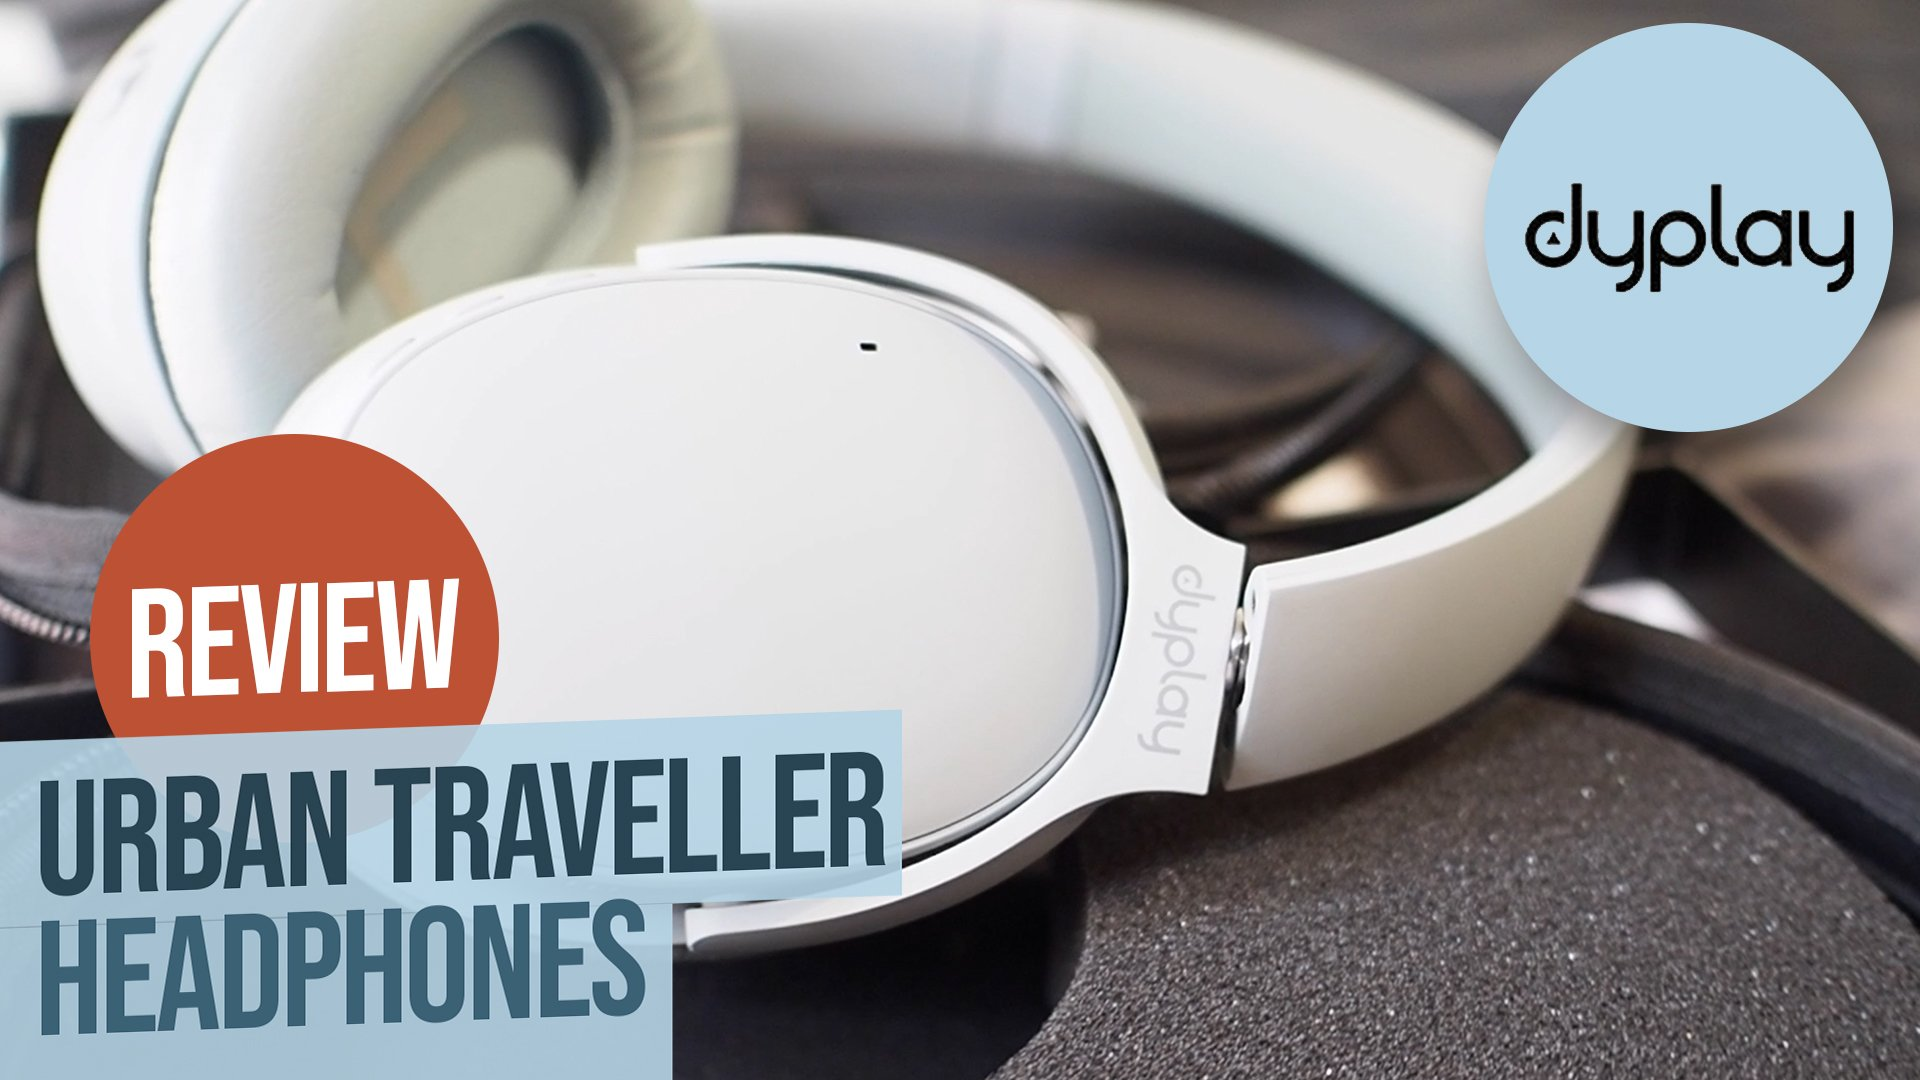 Dyplay Urban Traveller Headphones